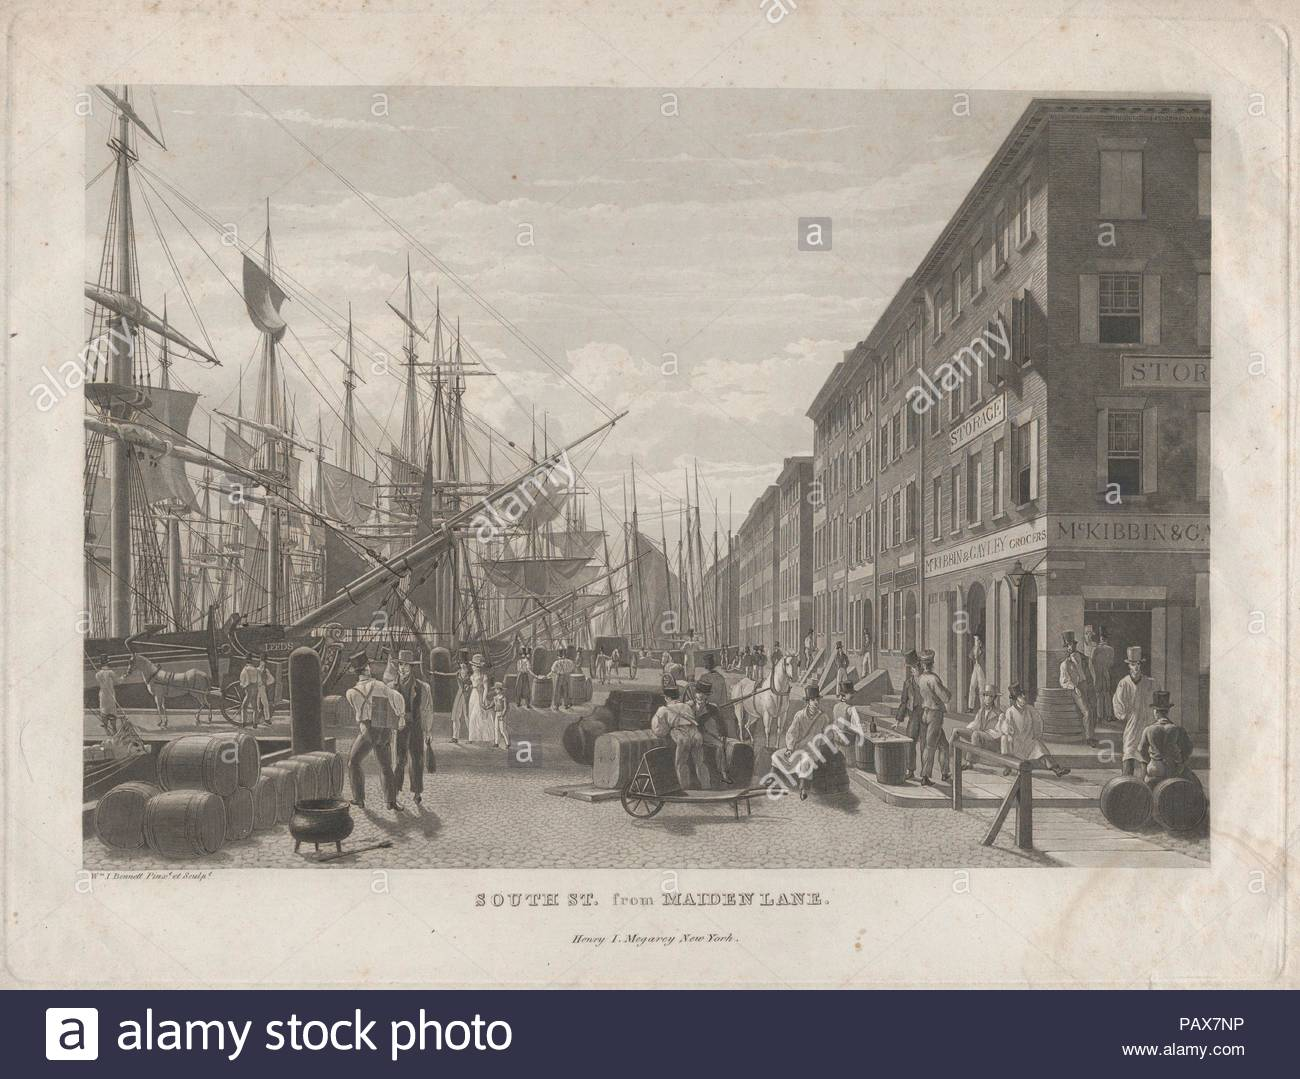 South St. from Maiden Lane. Artist: William James Bennett (American, London 1787-1844 New York). Dimensions: Sheet: 13 3/8 × 18 3/4 in. (33.9 × 47.6 cm)  Plate: 11 5/8 × 15 3/8 in. (29.5 × 39 cm). Publisher: Henry J. Megarey (American, 1818-1845 New York). Date: 1834.  New York view from 1828. Issued in 'Megarey's Street Views in the City of New-York, 1834: South Street from Maiden Lane.'. Museum: Metropolitan Museum of Art, New York, USA. - Stock Image